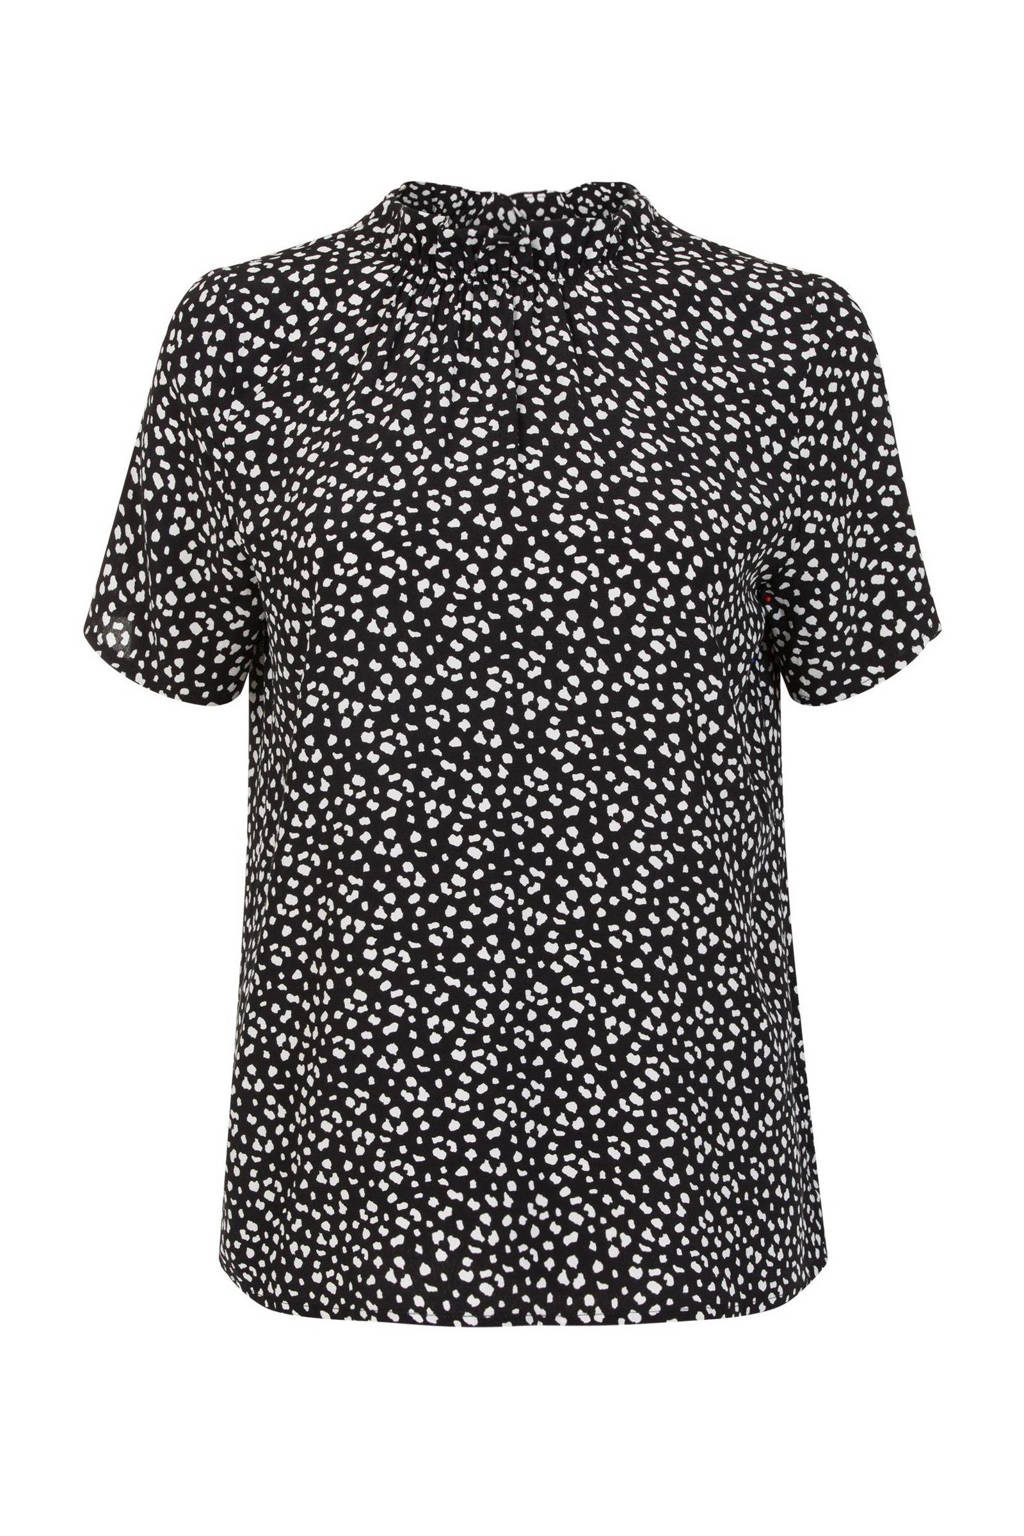 Miss Etam Regulier top met all over print zwart/wit, Zwart/wit